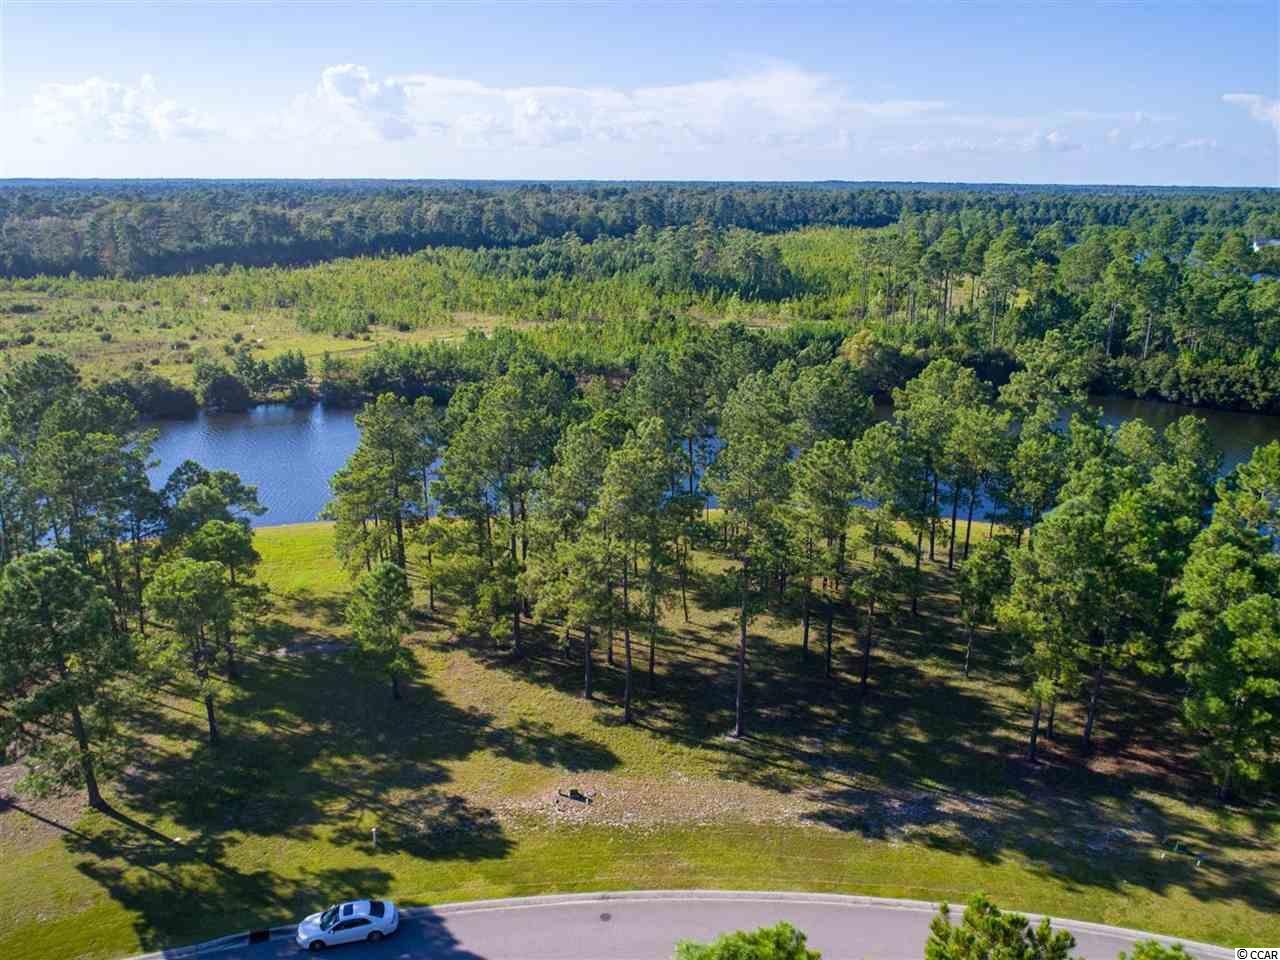 Gorgeous lakefront lot located in the highly sought after gated community of Waterbridge in Carolina Forest ! Lot 44 features over 90ft on the backside of the property with beautiful water views and is an easy walk to the amenities center. Come build your dream home w/ no time frame to build. On top of this fantastic lot, Waterbridge's awesome amenities include a huge pool area, tennis, fitness center, volleyball & basketball courts, boat storage, a boat launch & pier, fire pit, swim-up refreshments bar. Conveniently located close to the award winning school system and just a short drive to the Tanger Outlets, MB Airport, hospital, shopping, dining, entertainment, golf, area attractions, & the beautiful Atlantic Ocean w/ 60 miles of white sandy beaches ! Don't miss ~ come live the dream! Very wide in the back.